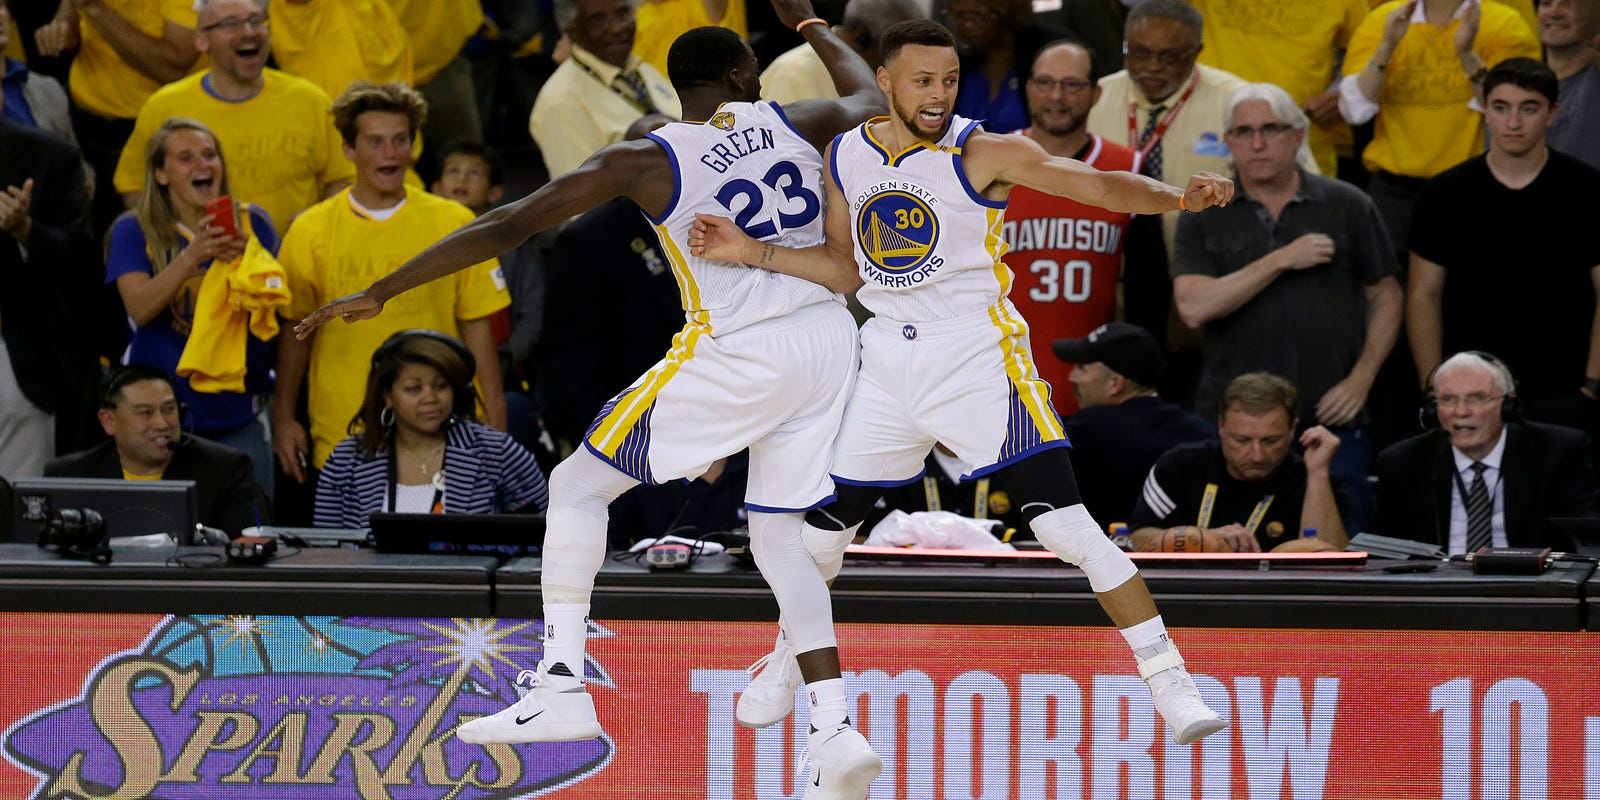 Kevin Durant, Stephen Curry lead Warriors to NBA championship